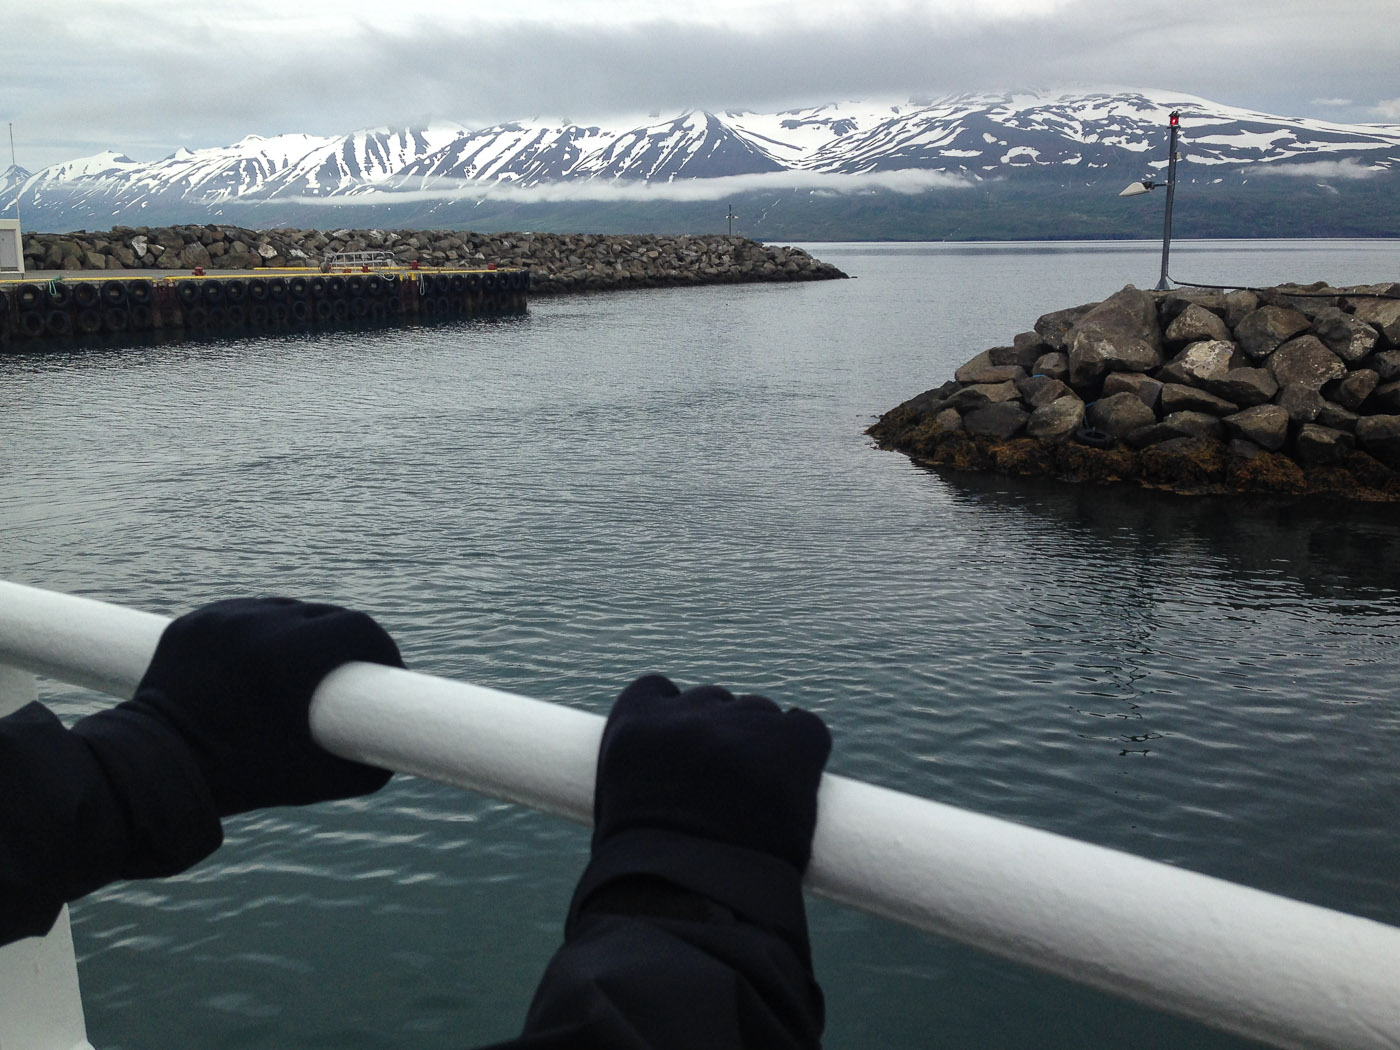 Northern Iceland - Hrísey island. On vacation. - <a href='http://www.hrisey.net/en/' target='_blank' class='linksnormal'>Hrísey</a>. (22 July 2014)